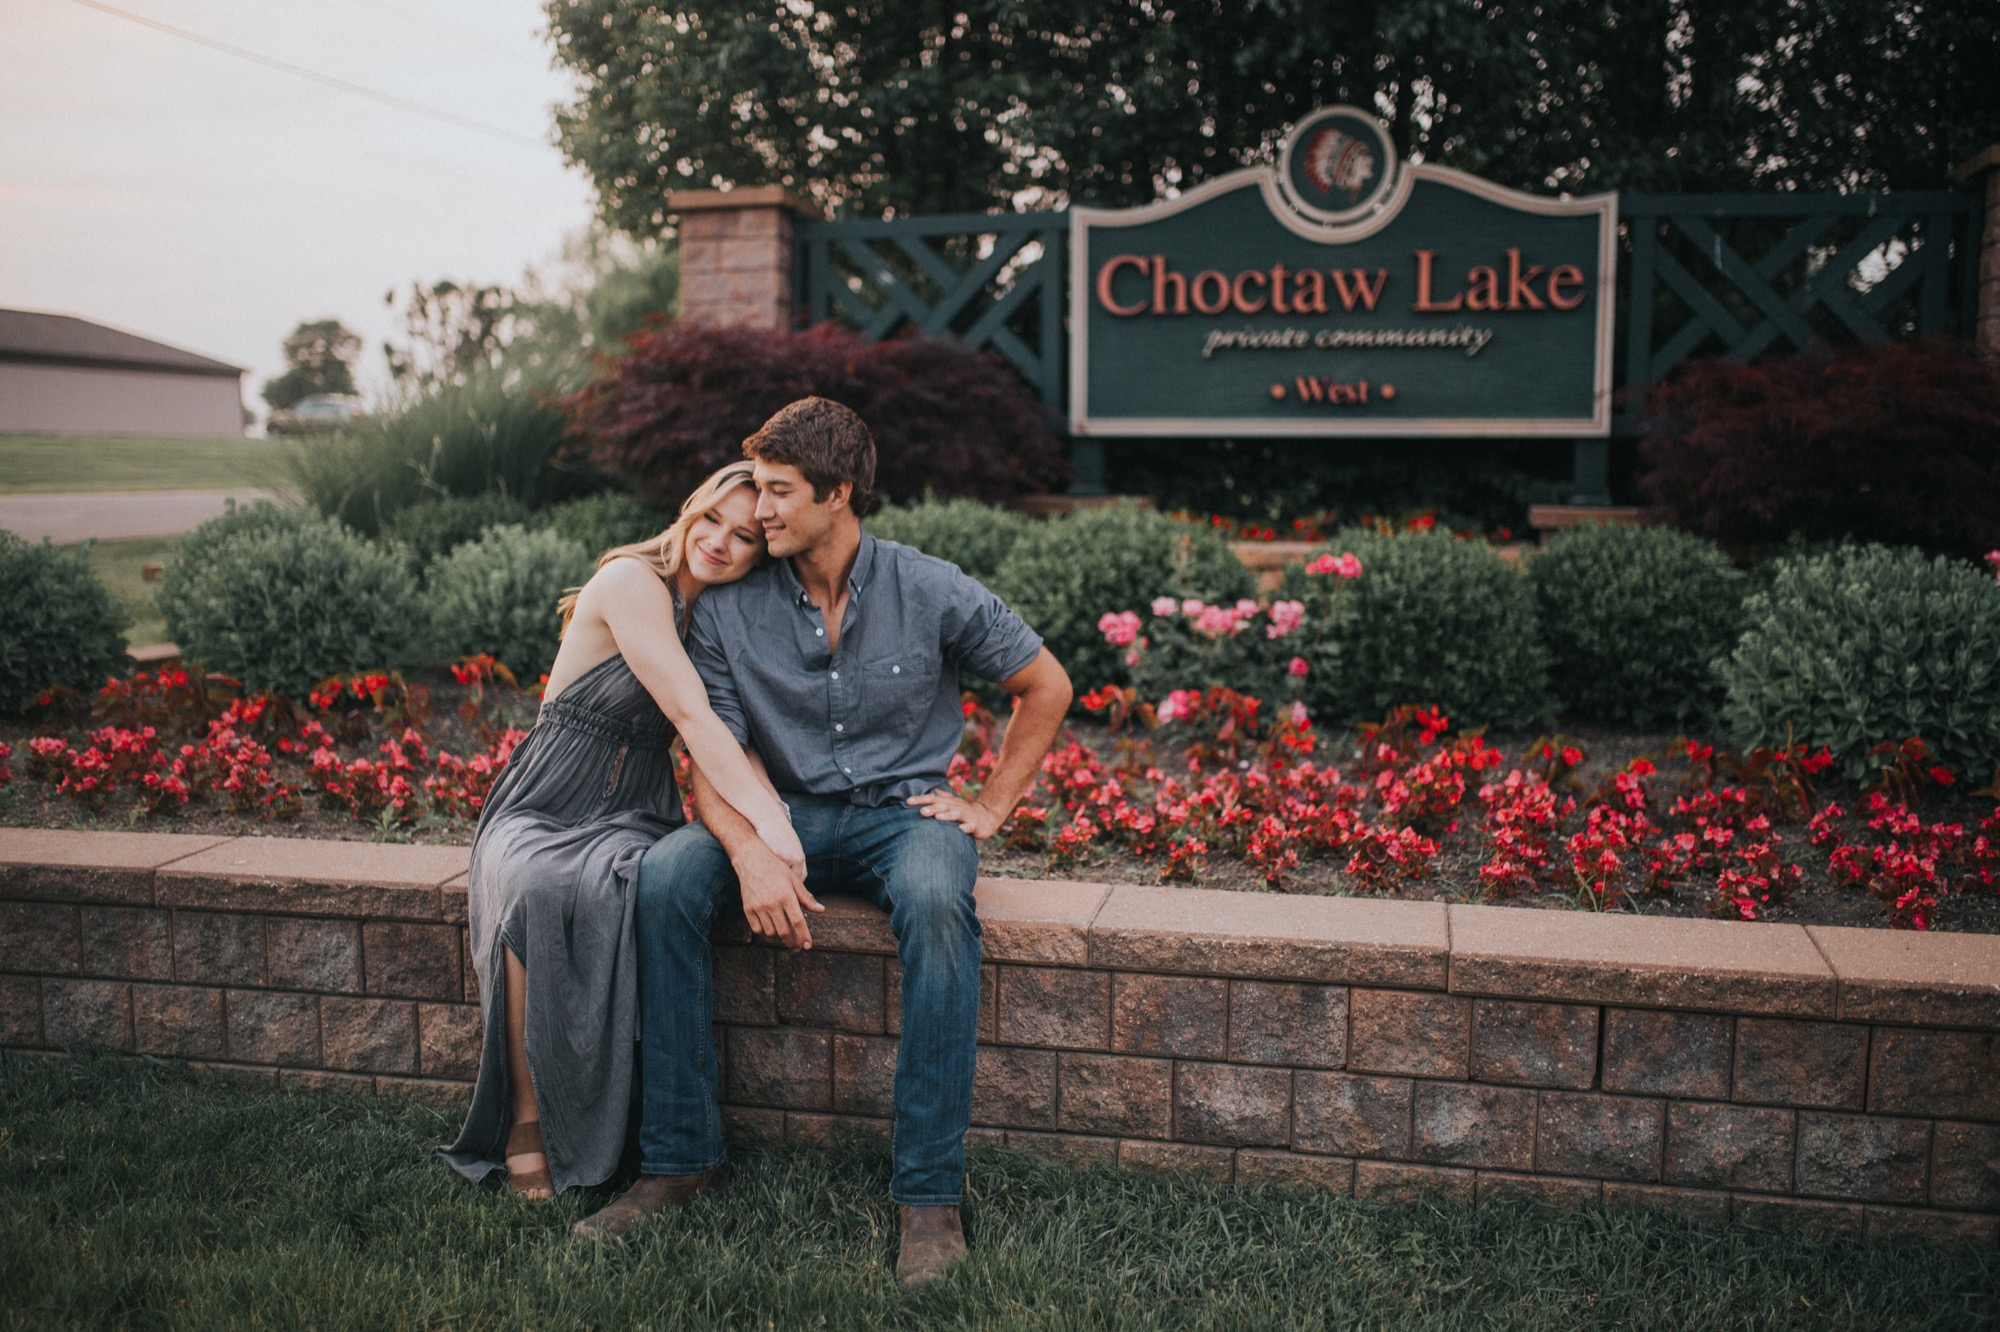 Choctaw Lake Ohio, Columbus Ohio, Columbus Ohio Wedding Photographer, Columbus Ohio Engagement Photographer, Choctaw Lake Engagement Session, Columbus Ohio Engagement Pictures, Columbus Ohio Engagement, Columbus Ohio Photographer, lake engagement pictures, engagement photo poses, engagement photos, engagement photos outfits, engagement photos outfits summer, engagement outfits, engagement outfits summer, engagement dresses pictures, engagement photos ideas, engagement outfits